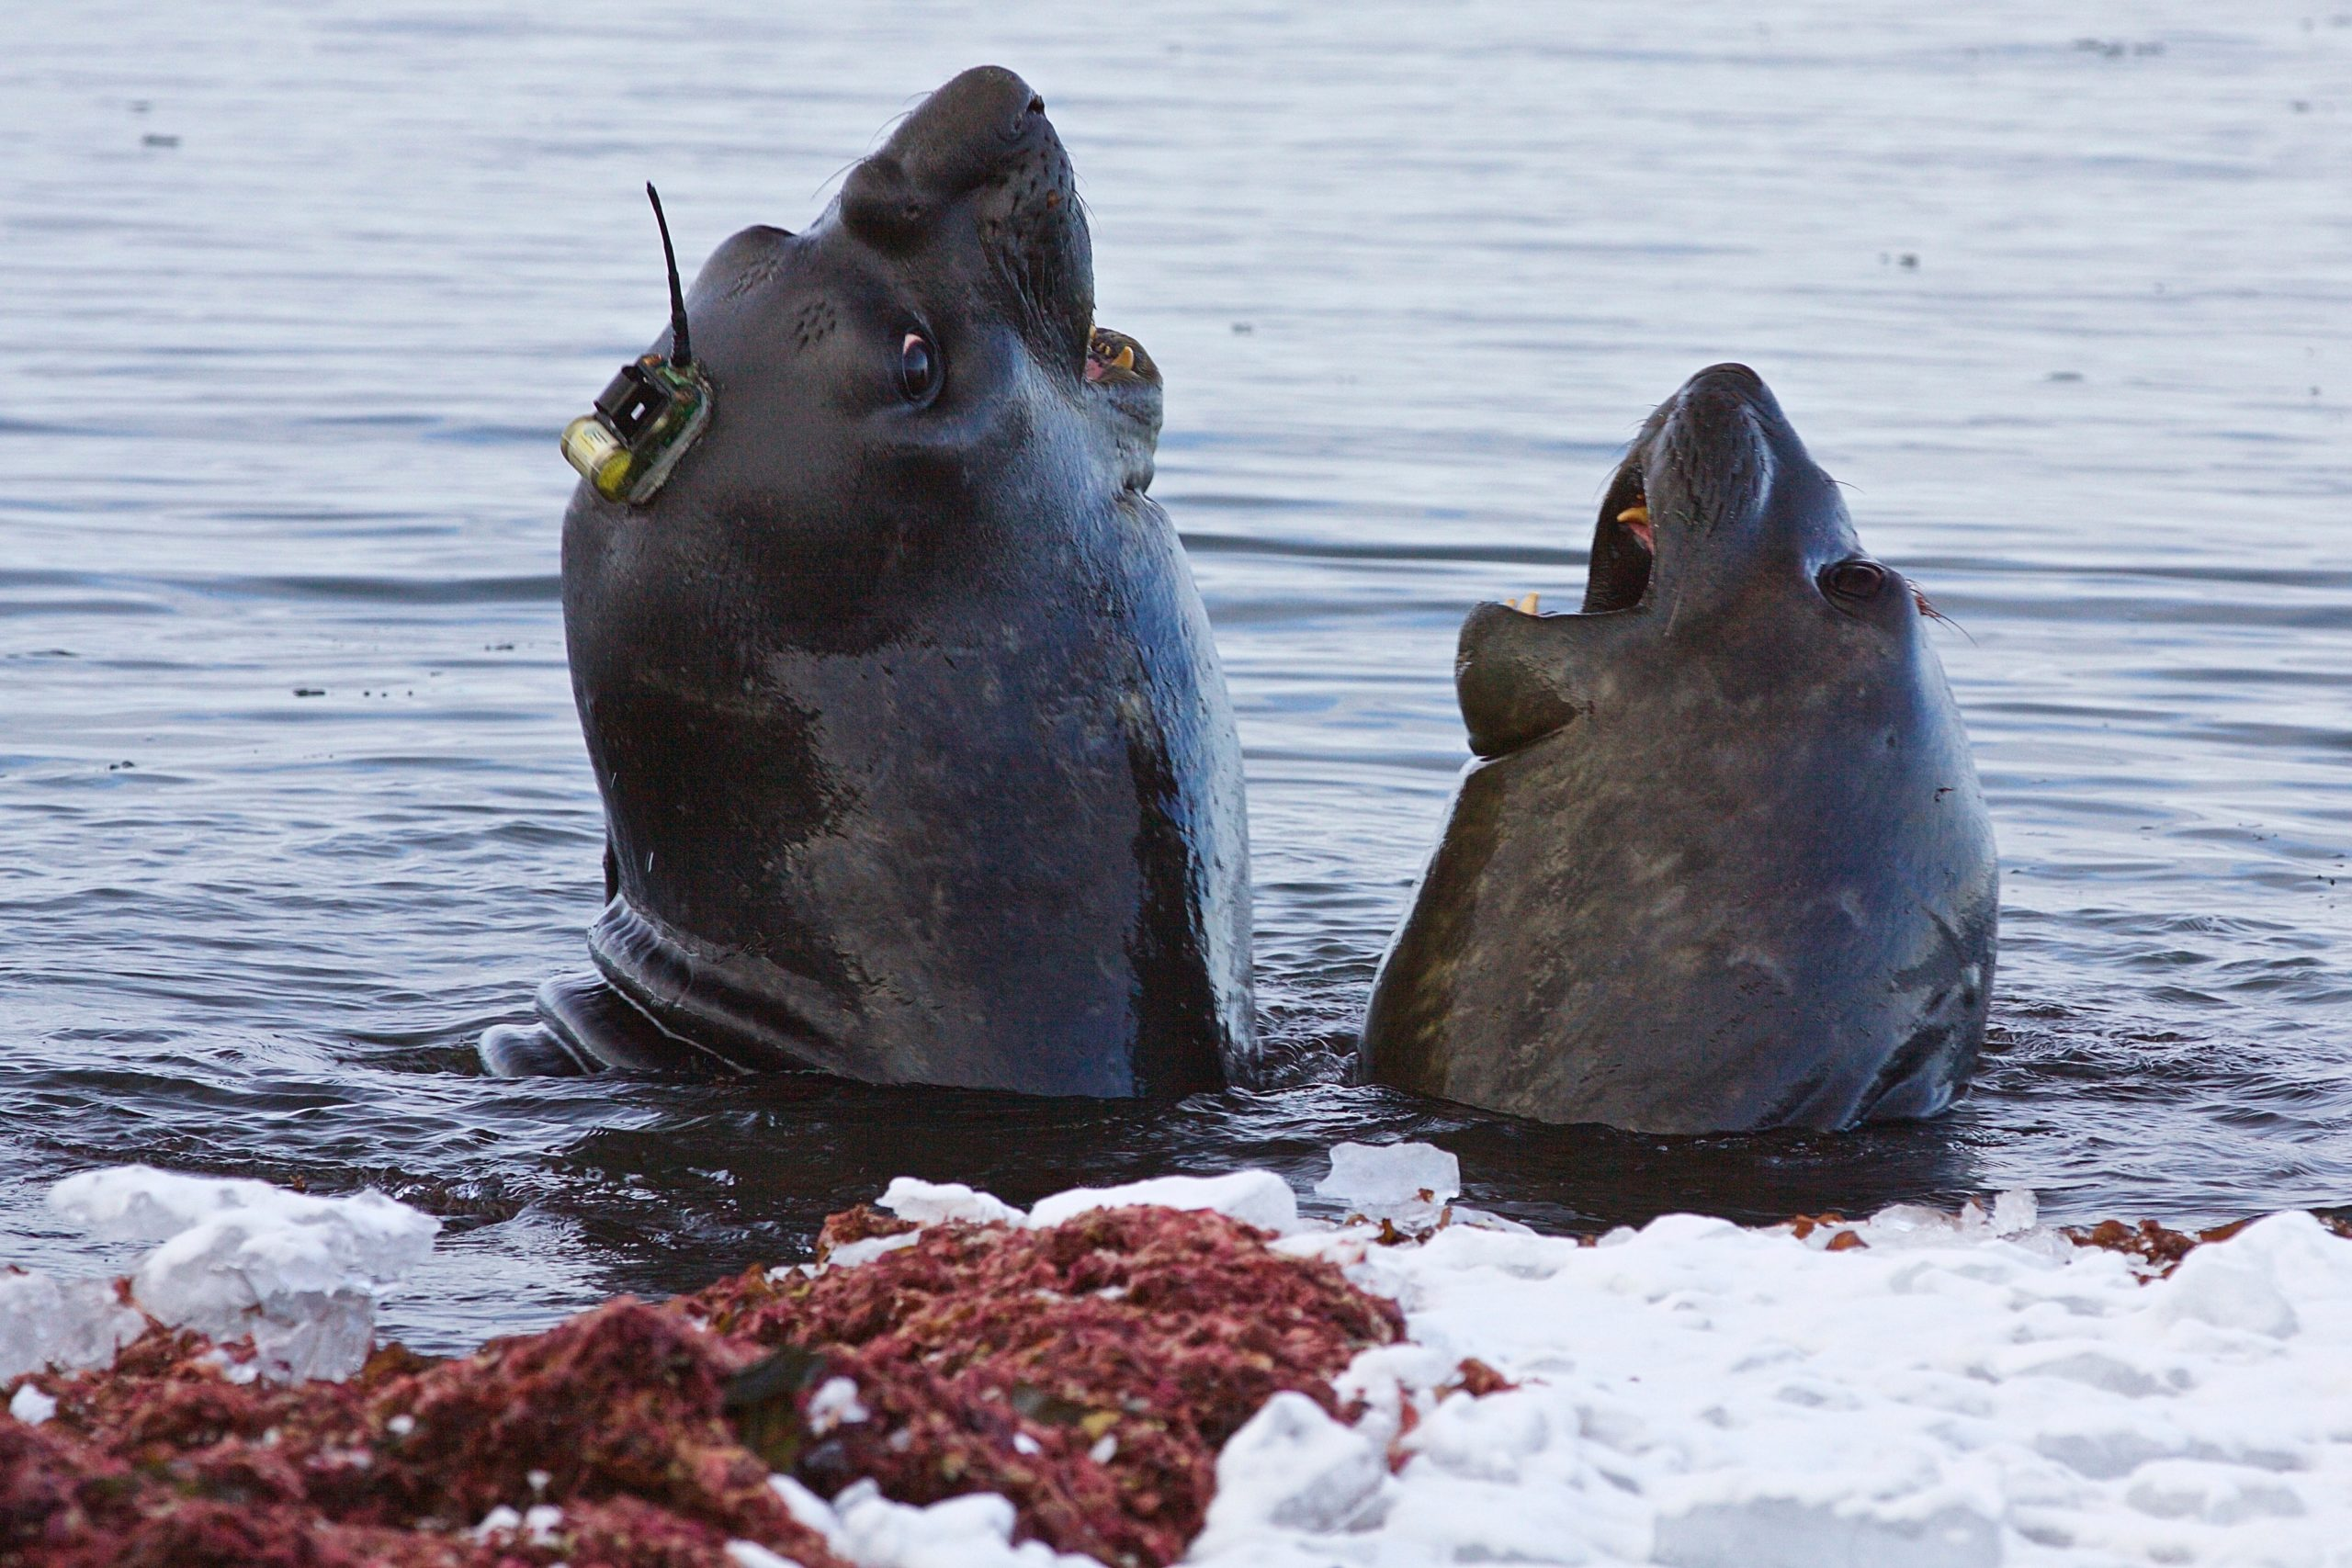 A seal with a tagging device, Antarctica's ice shelves